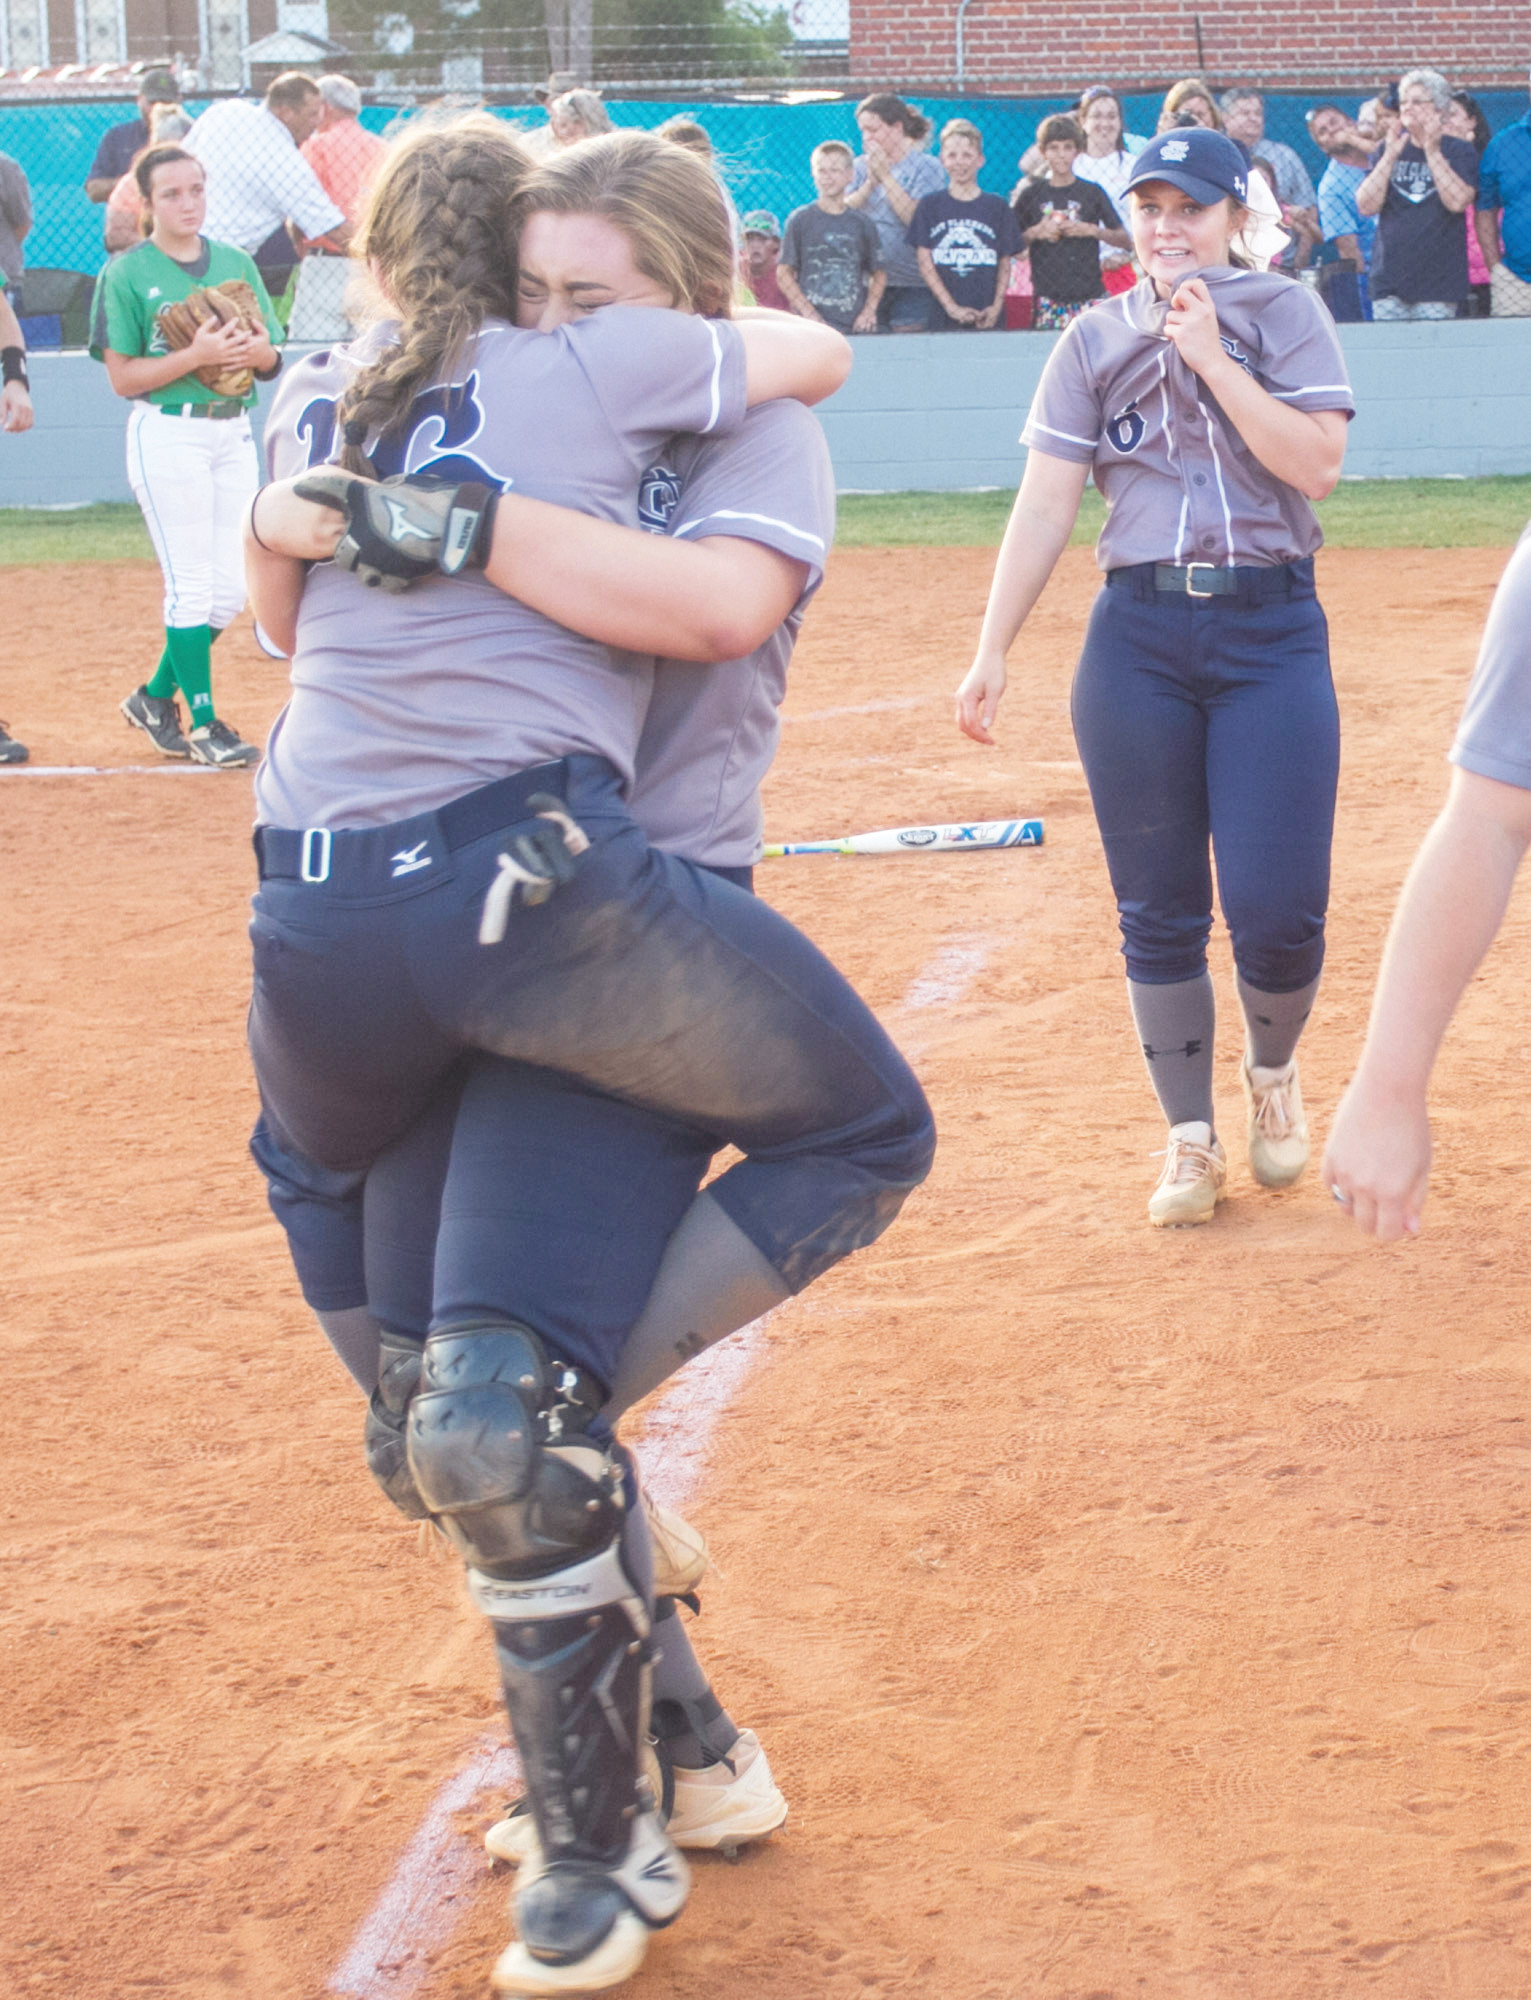 East Clarendon's Zoe McElveen (16) is hugged by catcher Abby Reardon as Marleigh Floyd (6) looks on after the Lady Wolverines defeated Dixie 4-3 in the bottom of the seventh inning on Wednesday at the ECHS field in Turbeville to claim the 1A state championship.